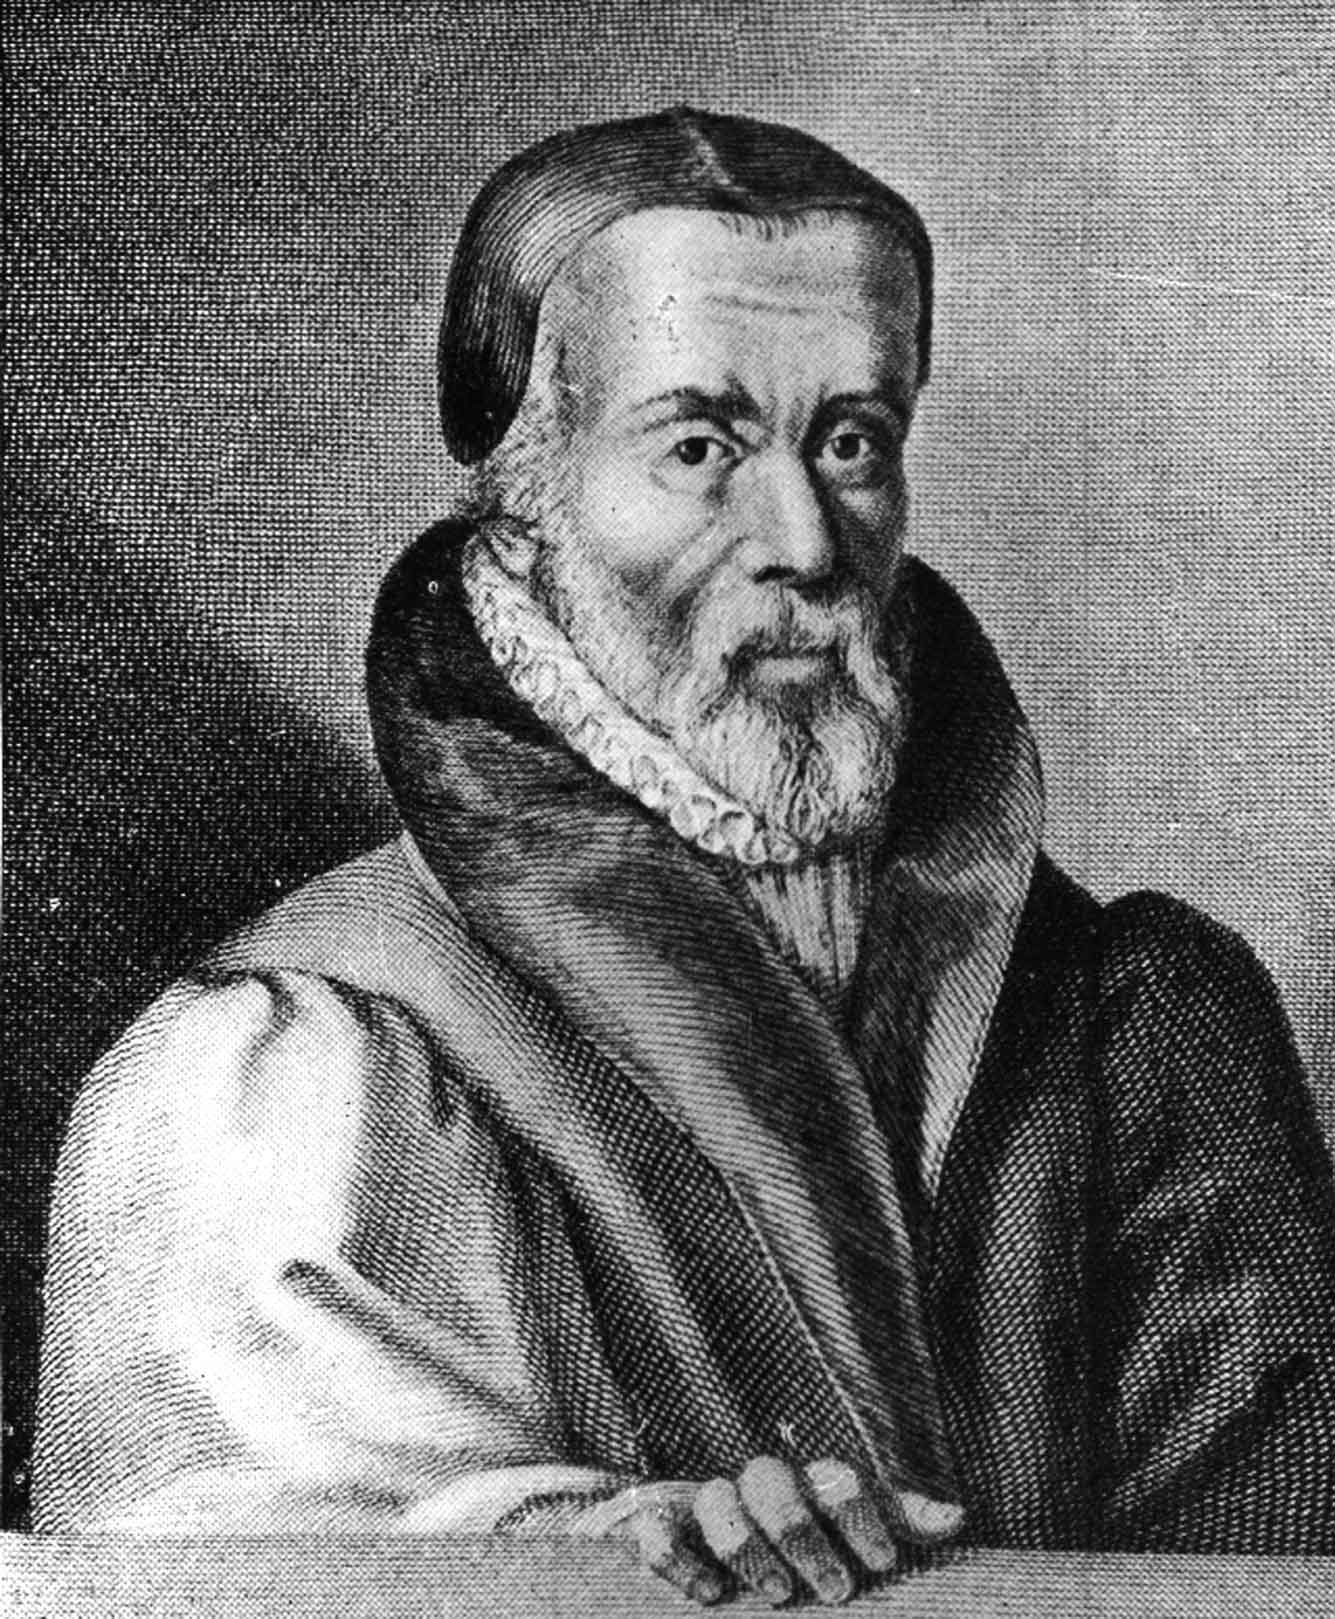 William_Tyndale.jpg